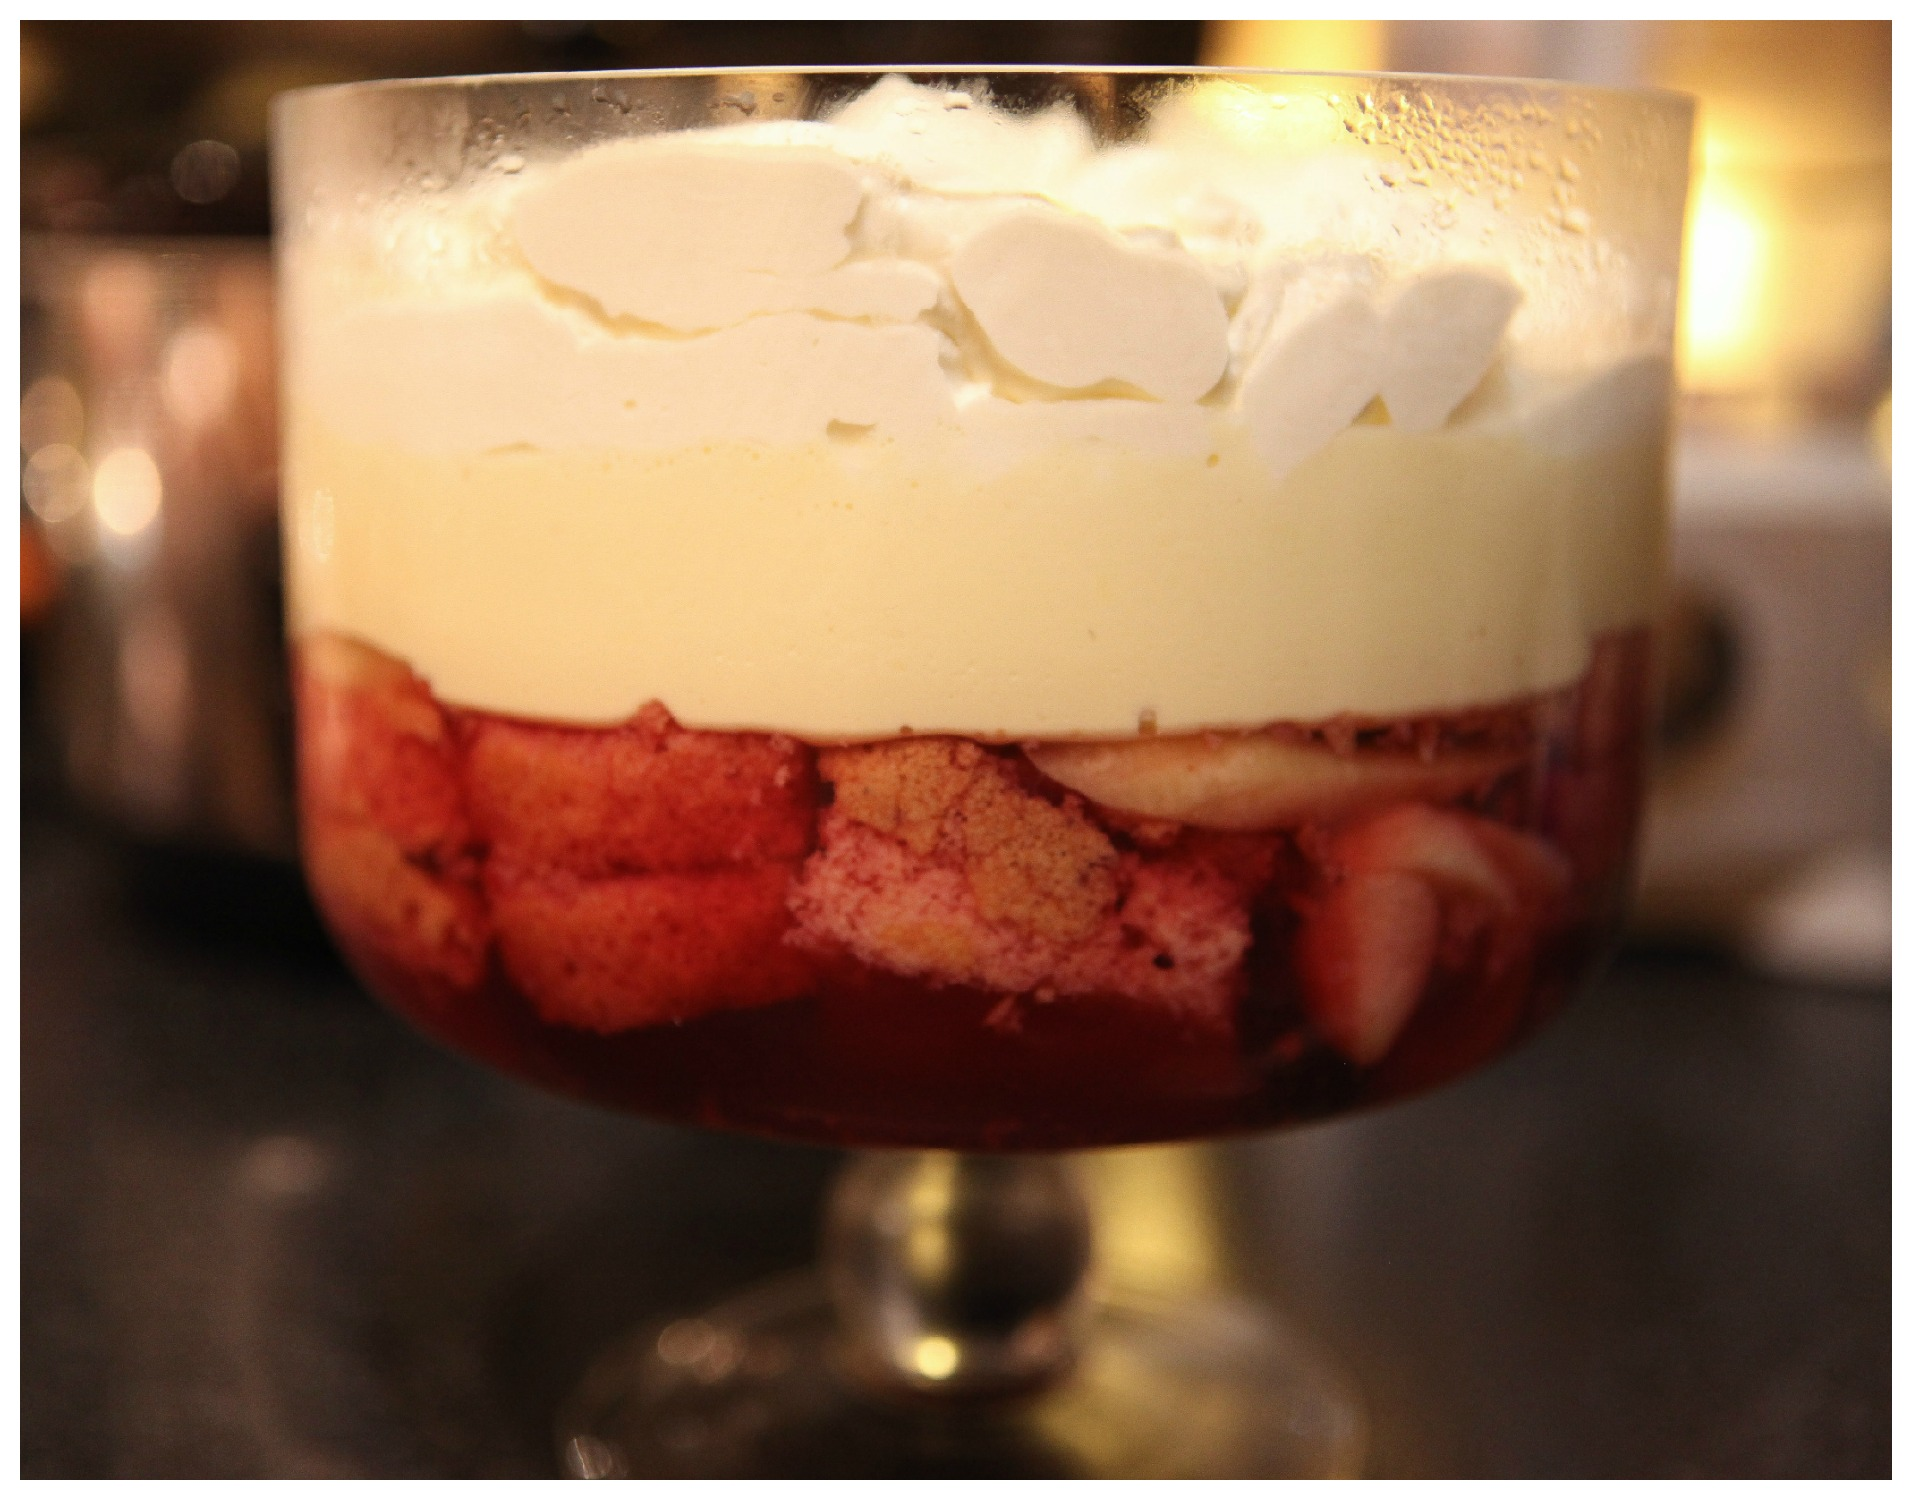 Jelly sponge trifle